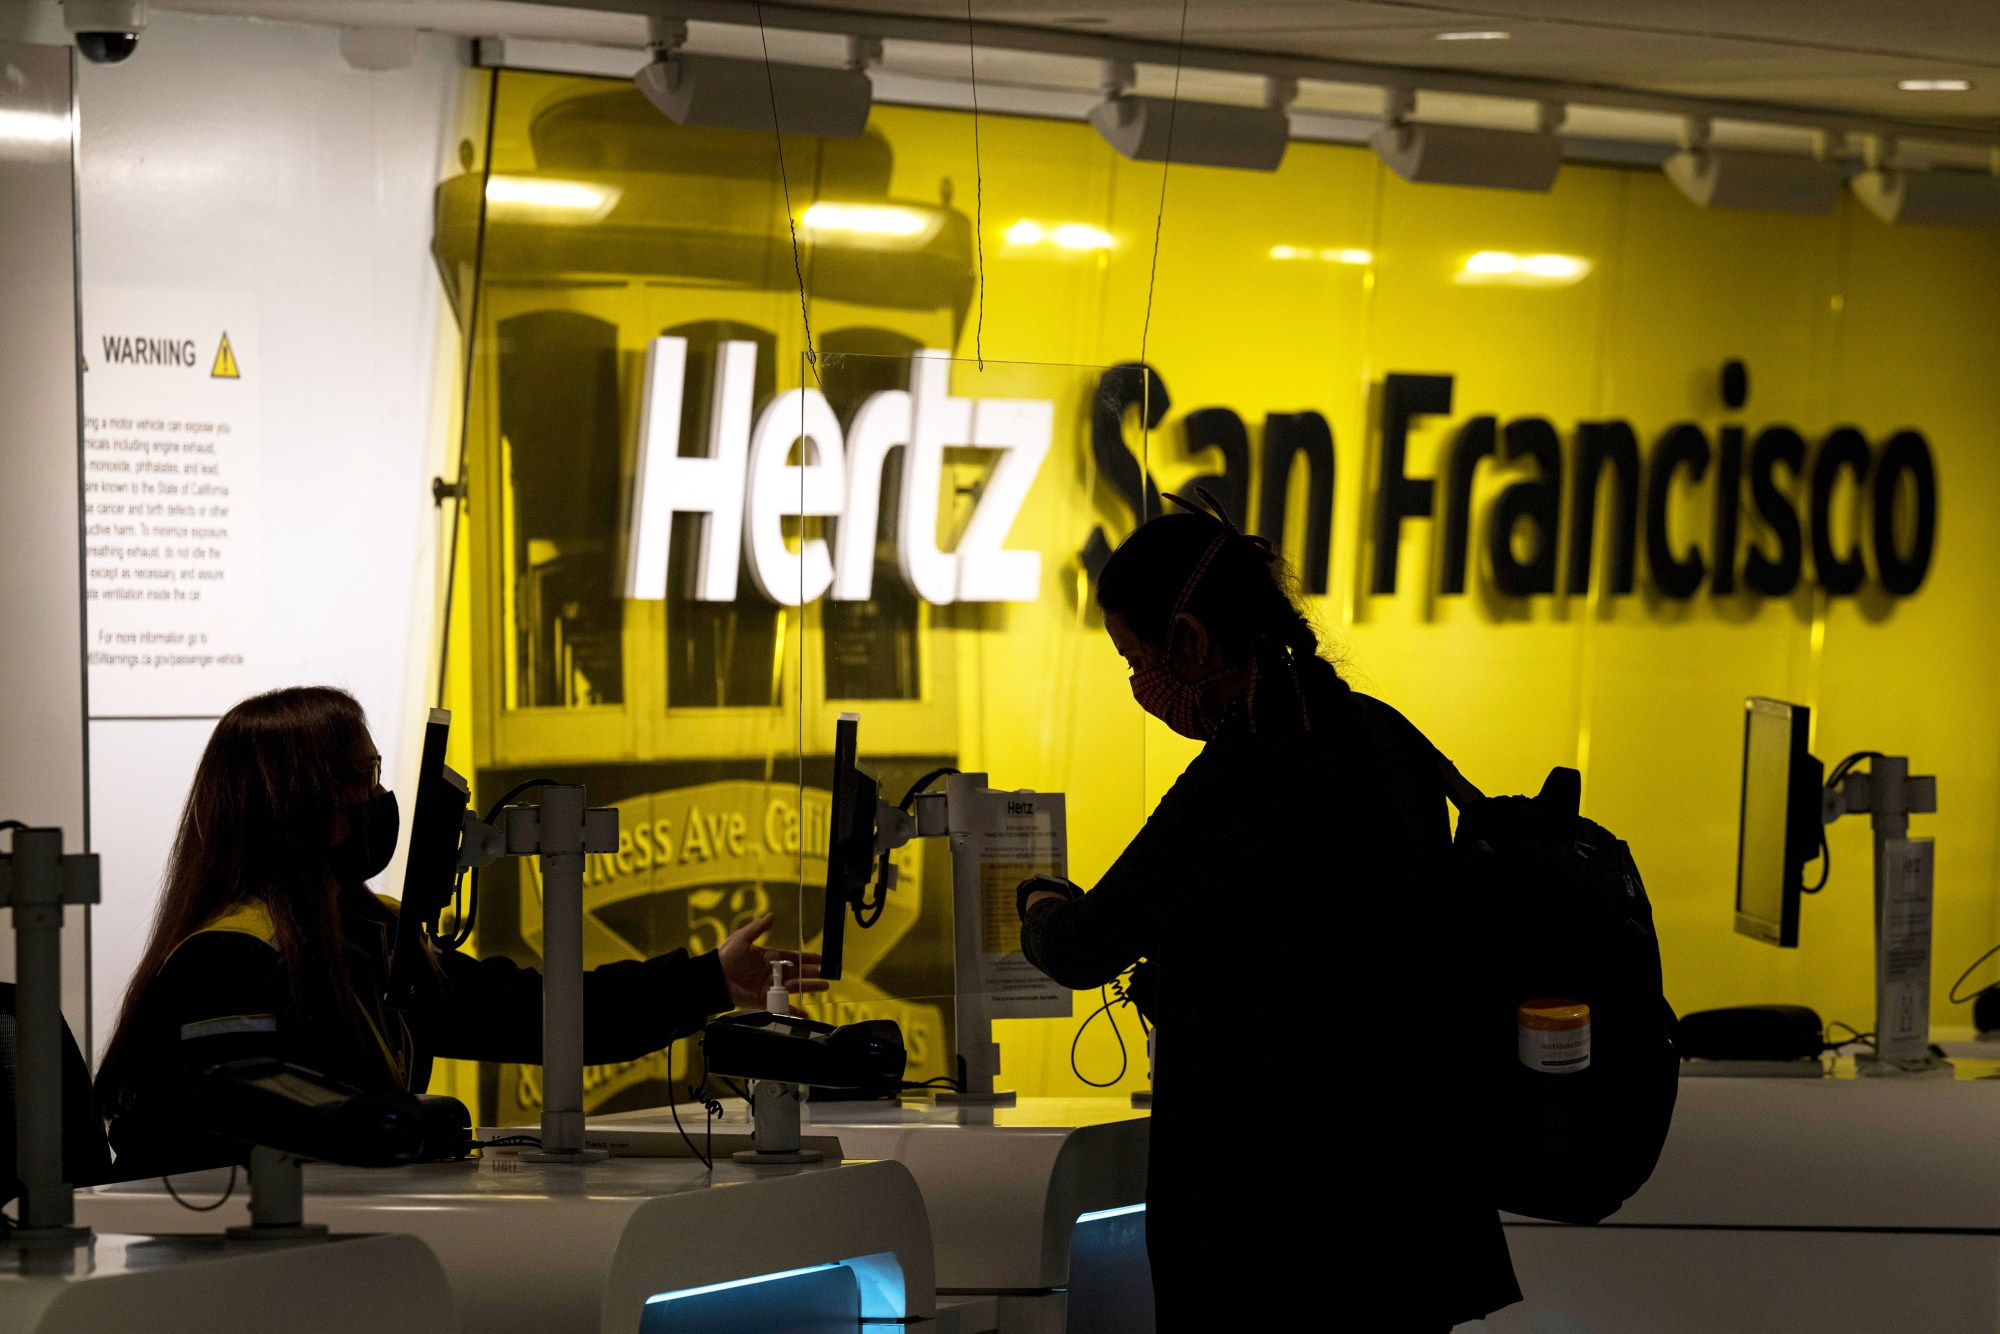 Hertz Runs Into Cash Crunch After Years Of Management Tumult